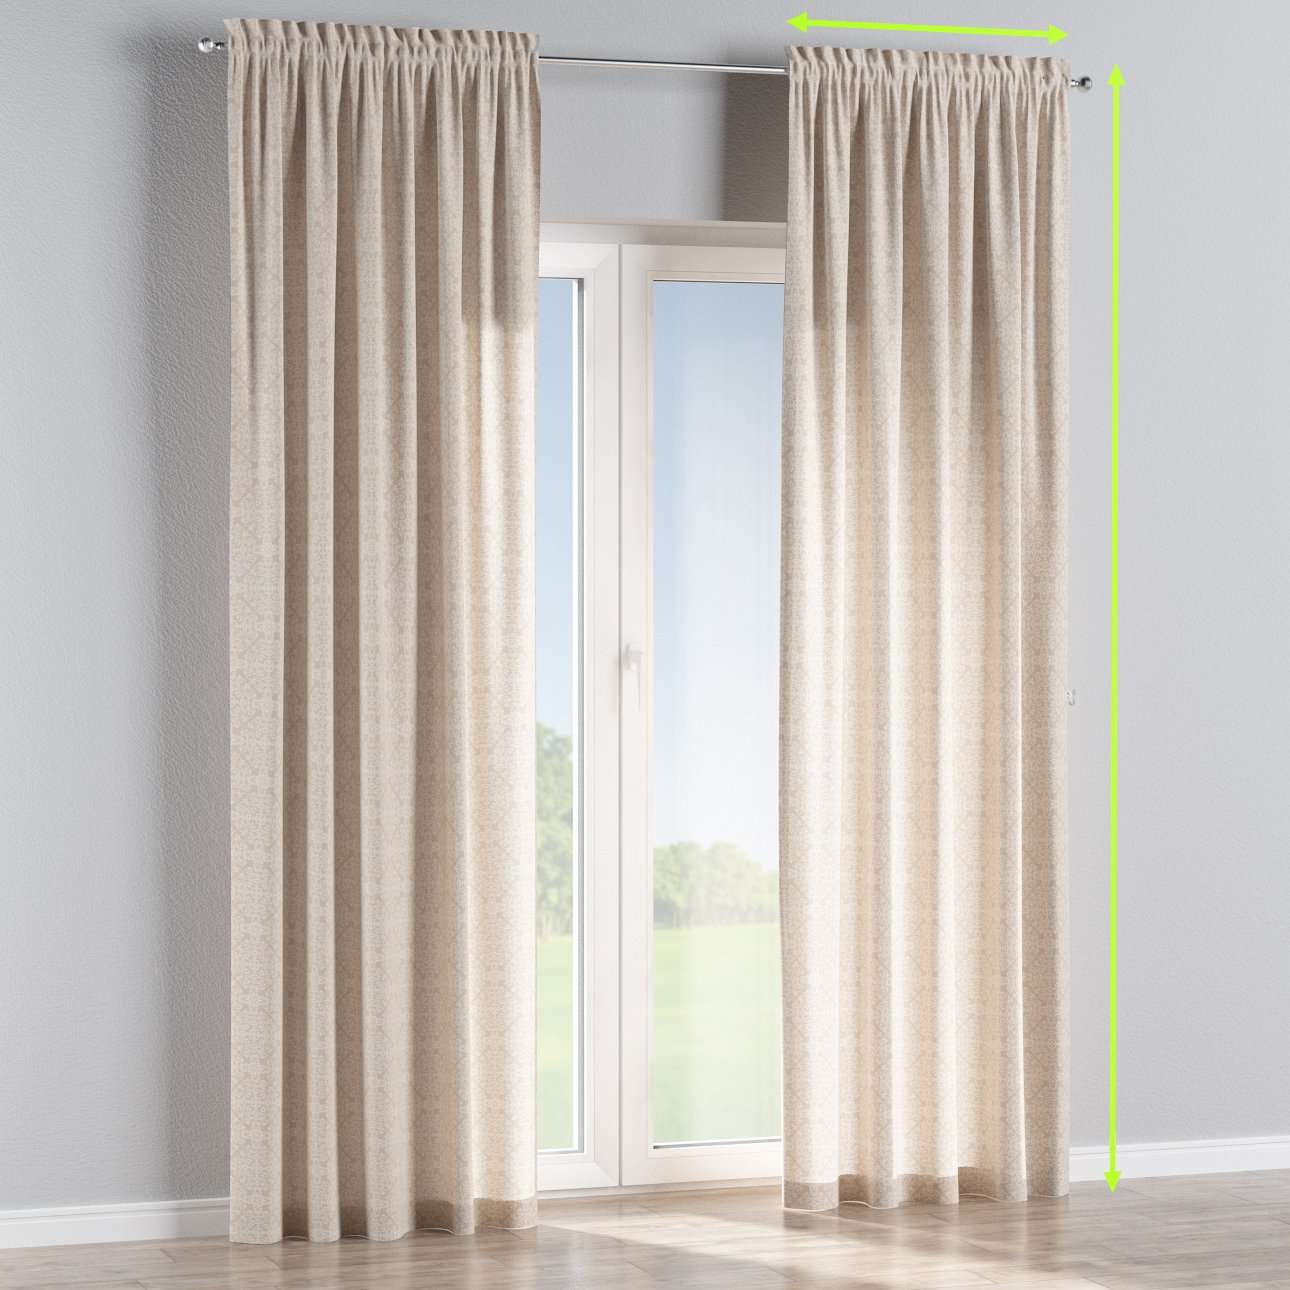 Slot and frill curtains in collection Flowers, fabric: 140-39